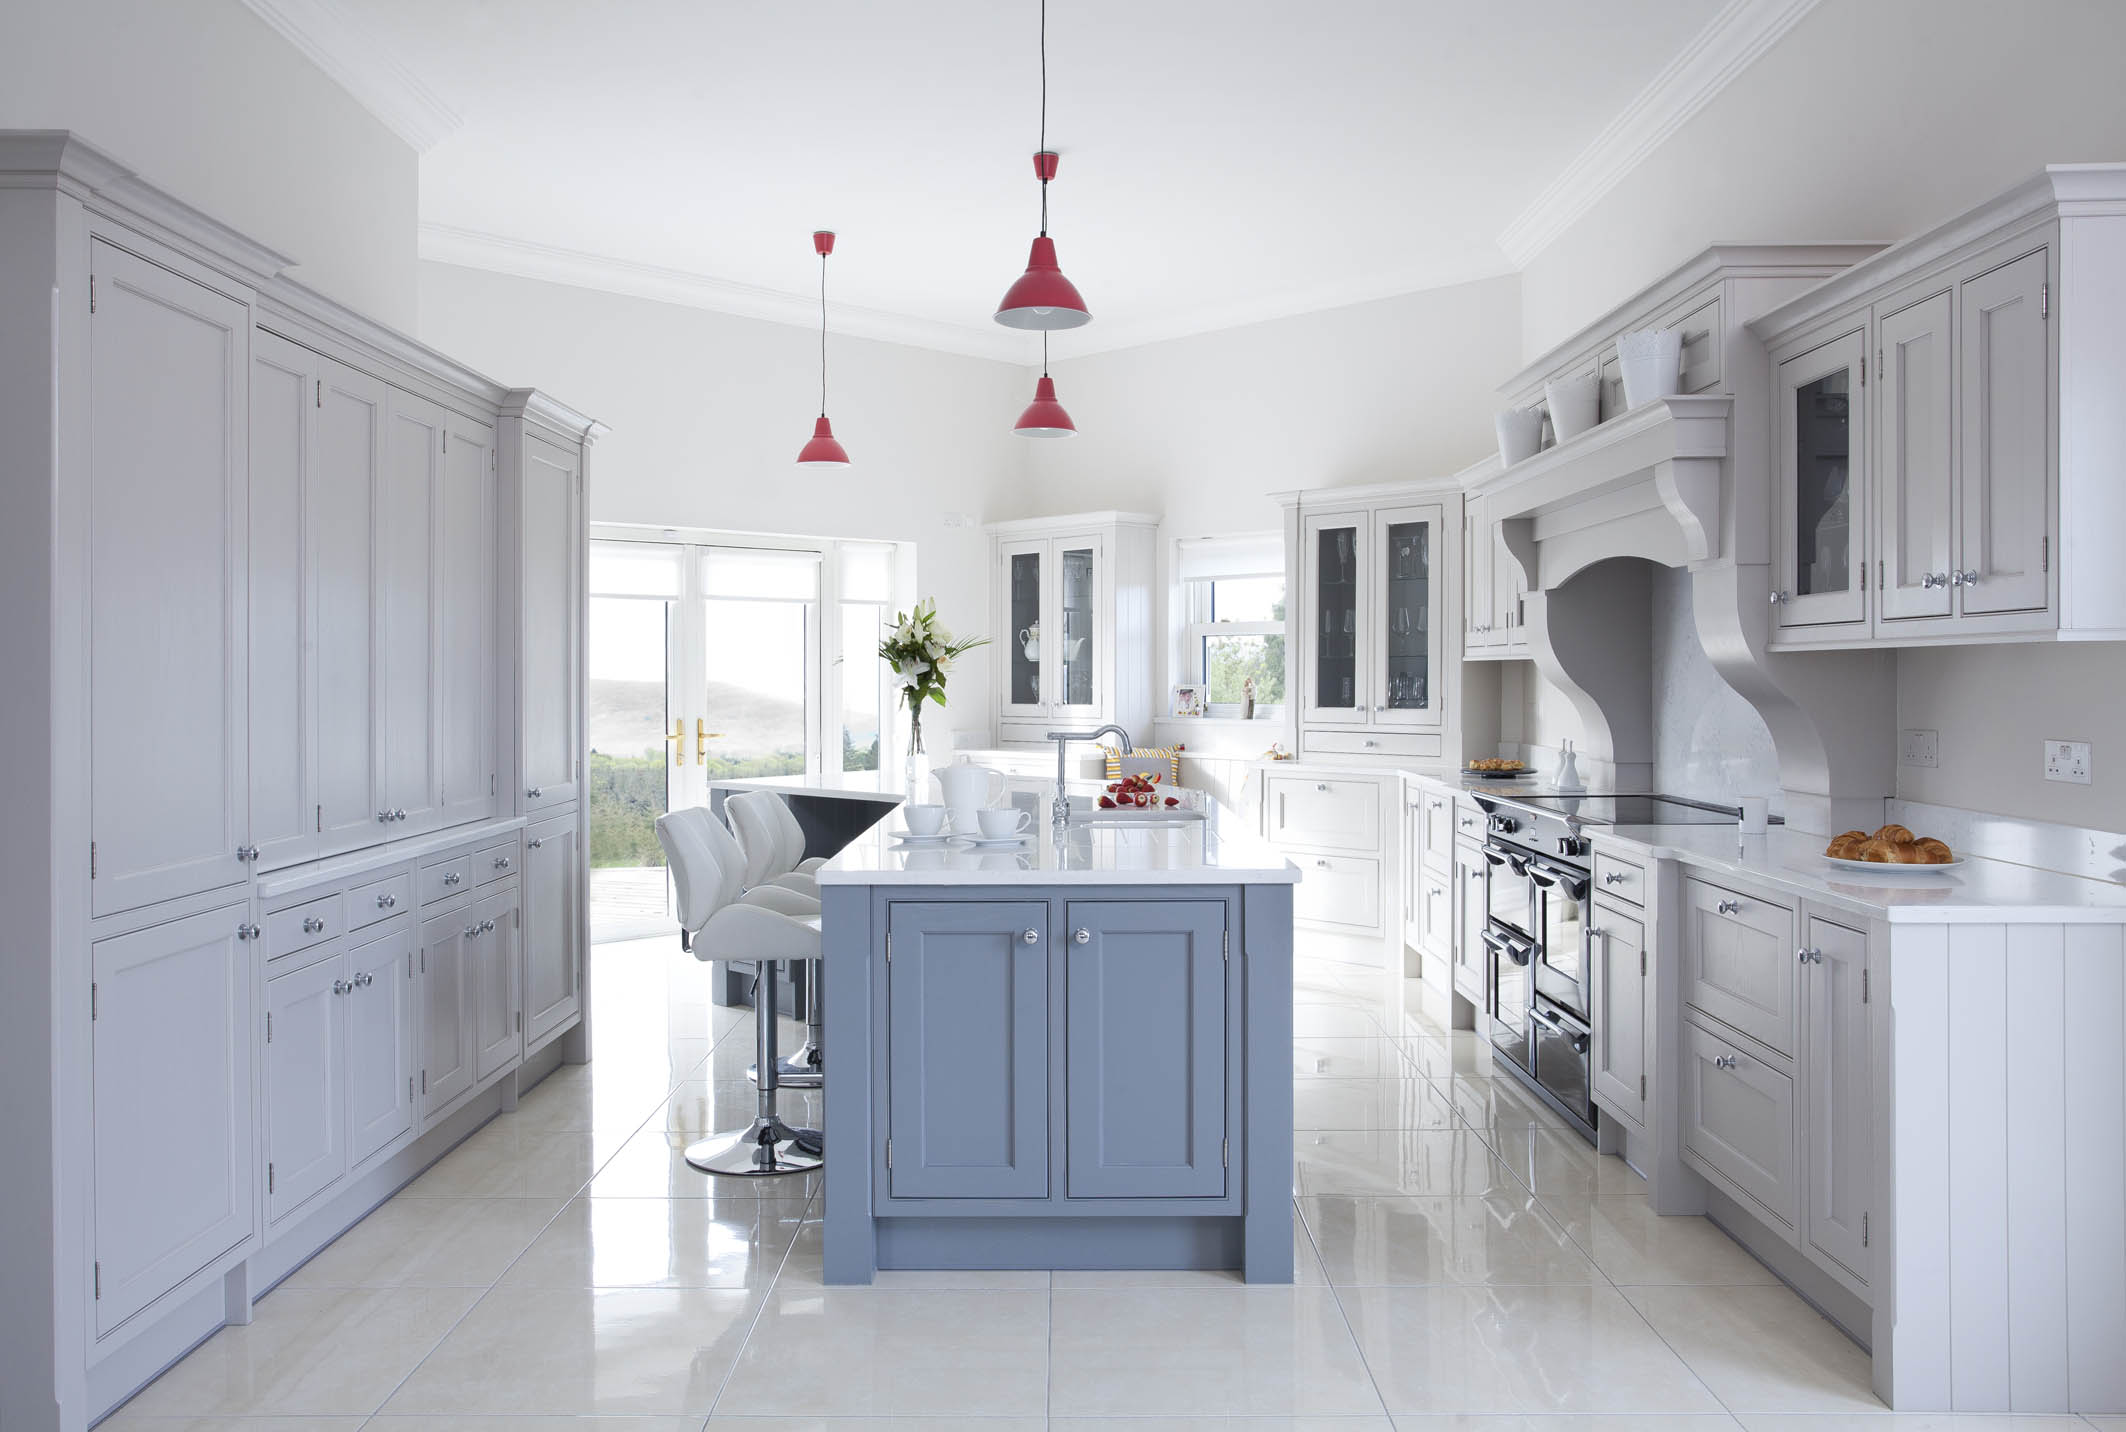 CLASSIC KITCHENS HANDPAINTED KITCHENS DUBLIN